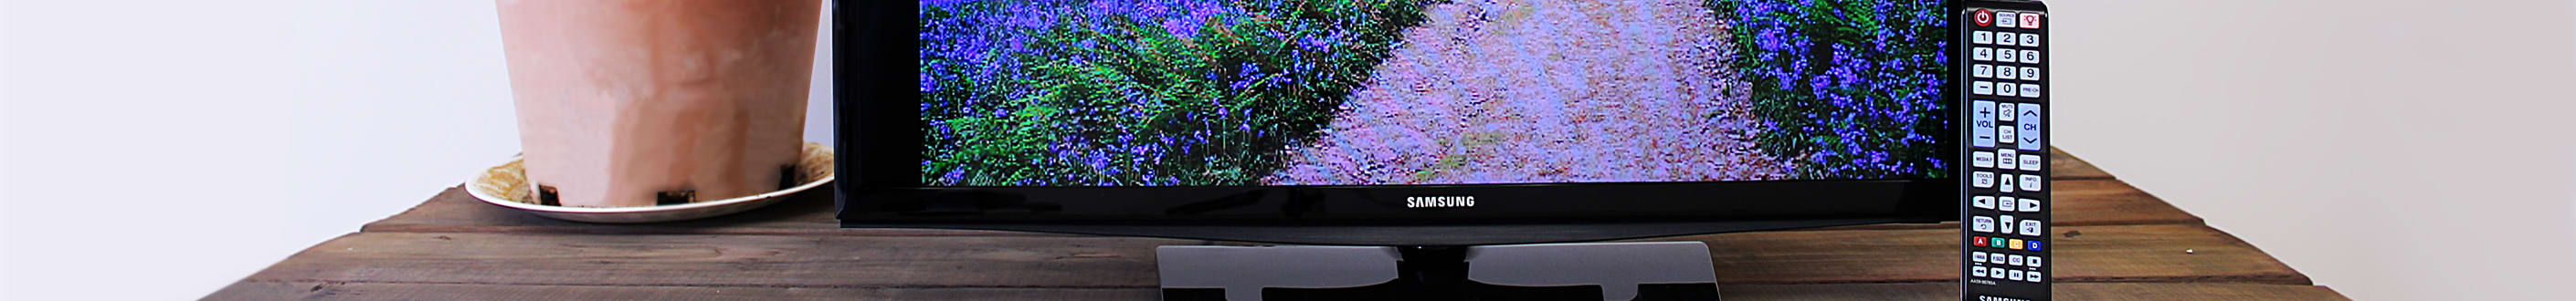 The Samsung UN28H4000 LED TV